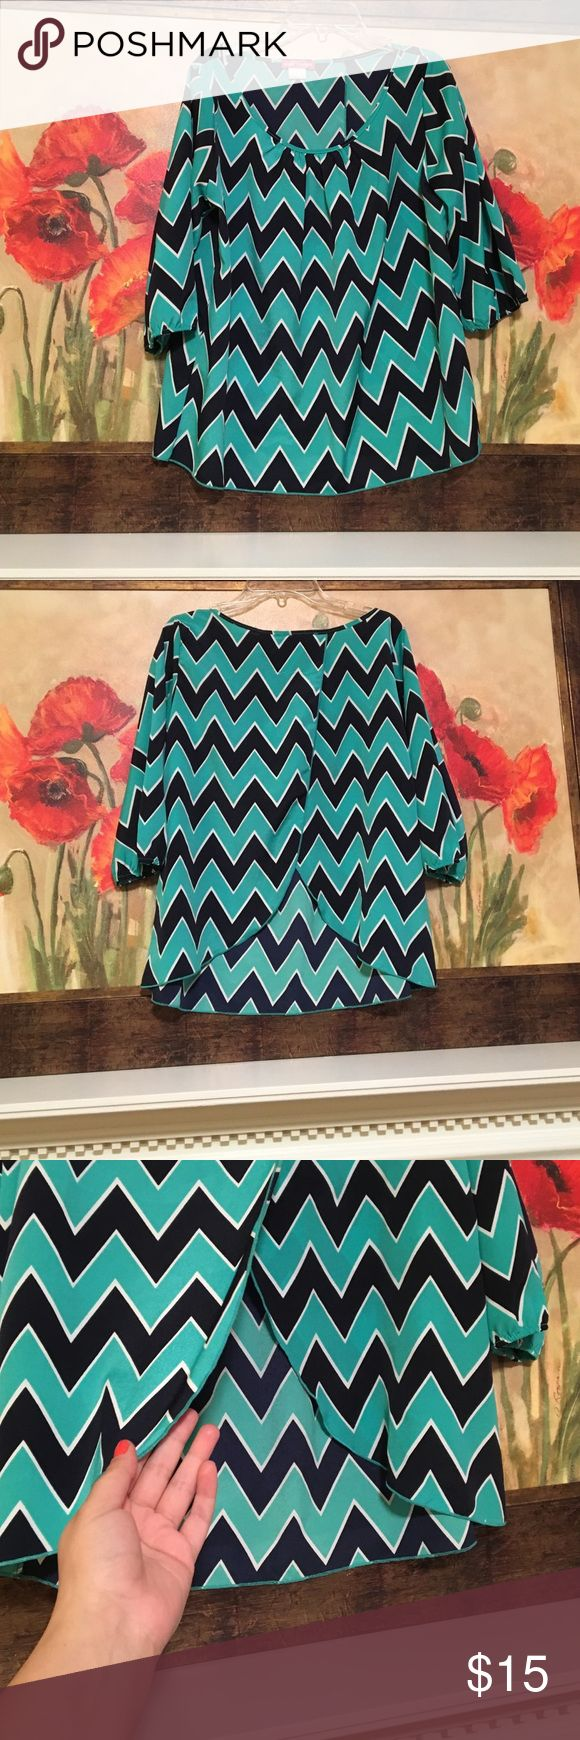 NWOT 3 quarter length chevron top, size medium NEW without tags 3 quarter length Body Central chevron top, size medium, teal and navy blue, overlapping slot in back, 100% polyester Body Central  Tops Blouses